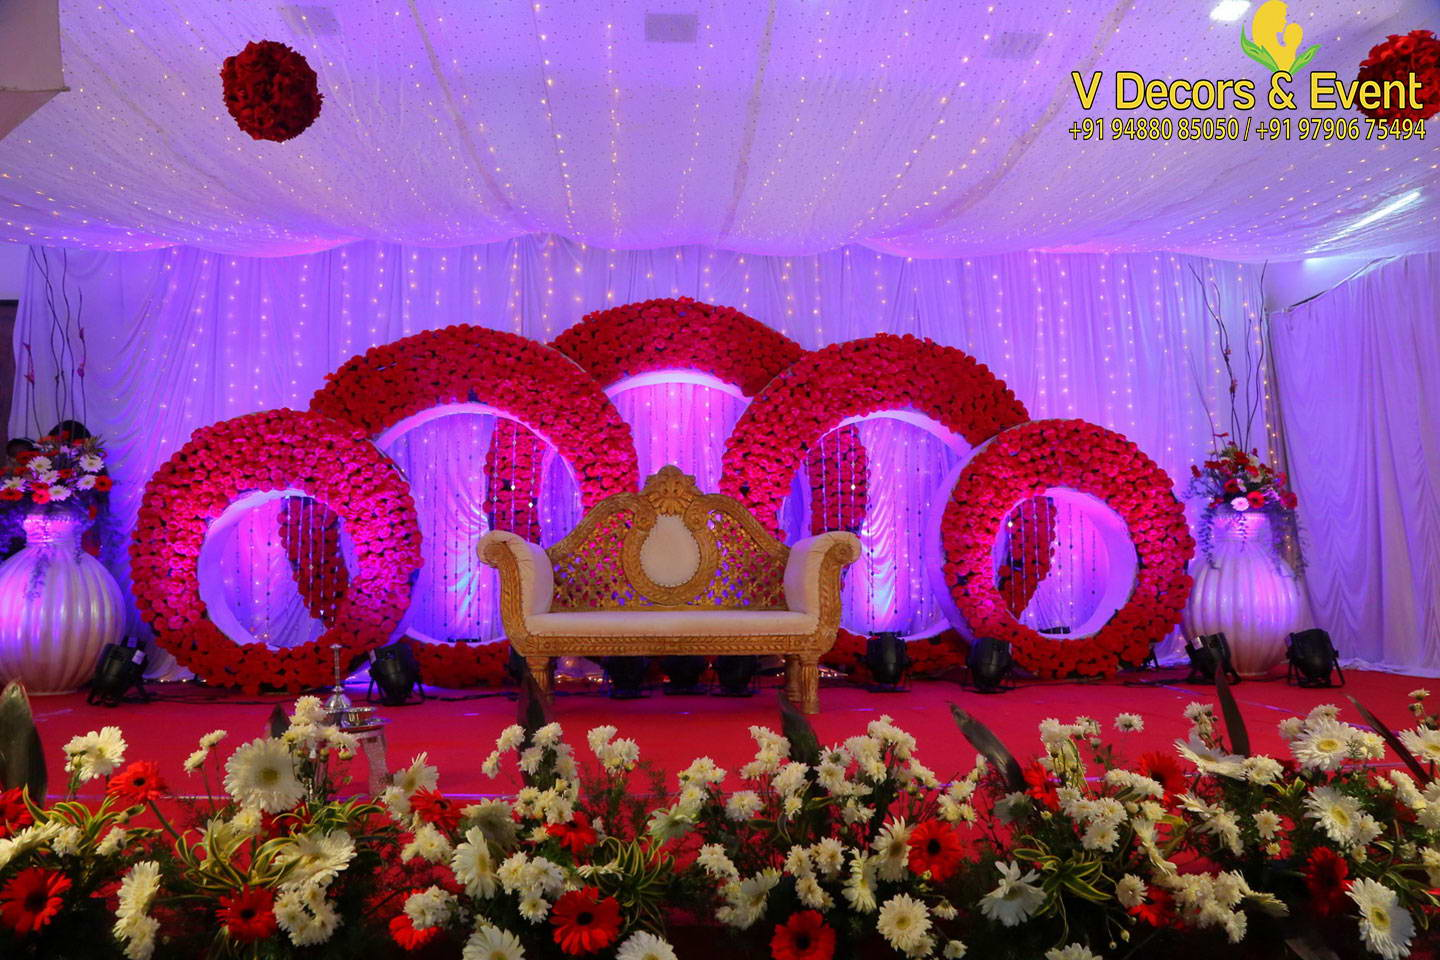 Stage Decoration V Decors And Events Wedding Decorations Pondicherry Event